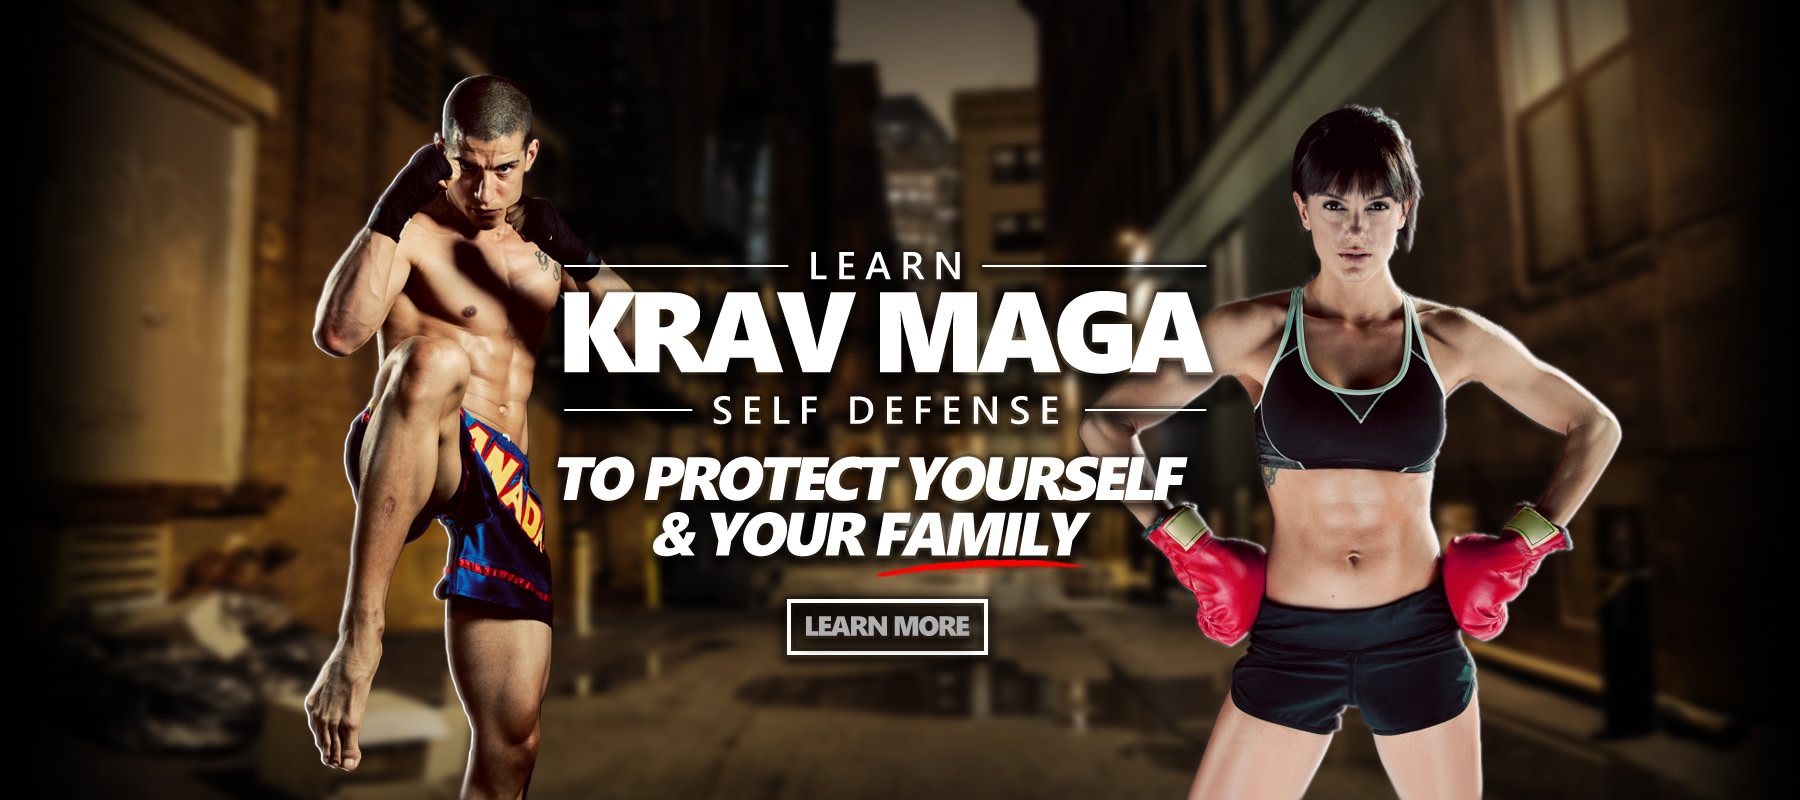 Krav Maga Self Defense Classes